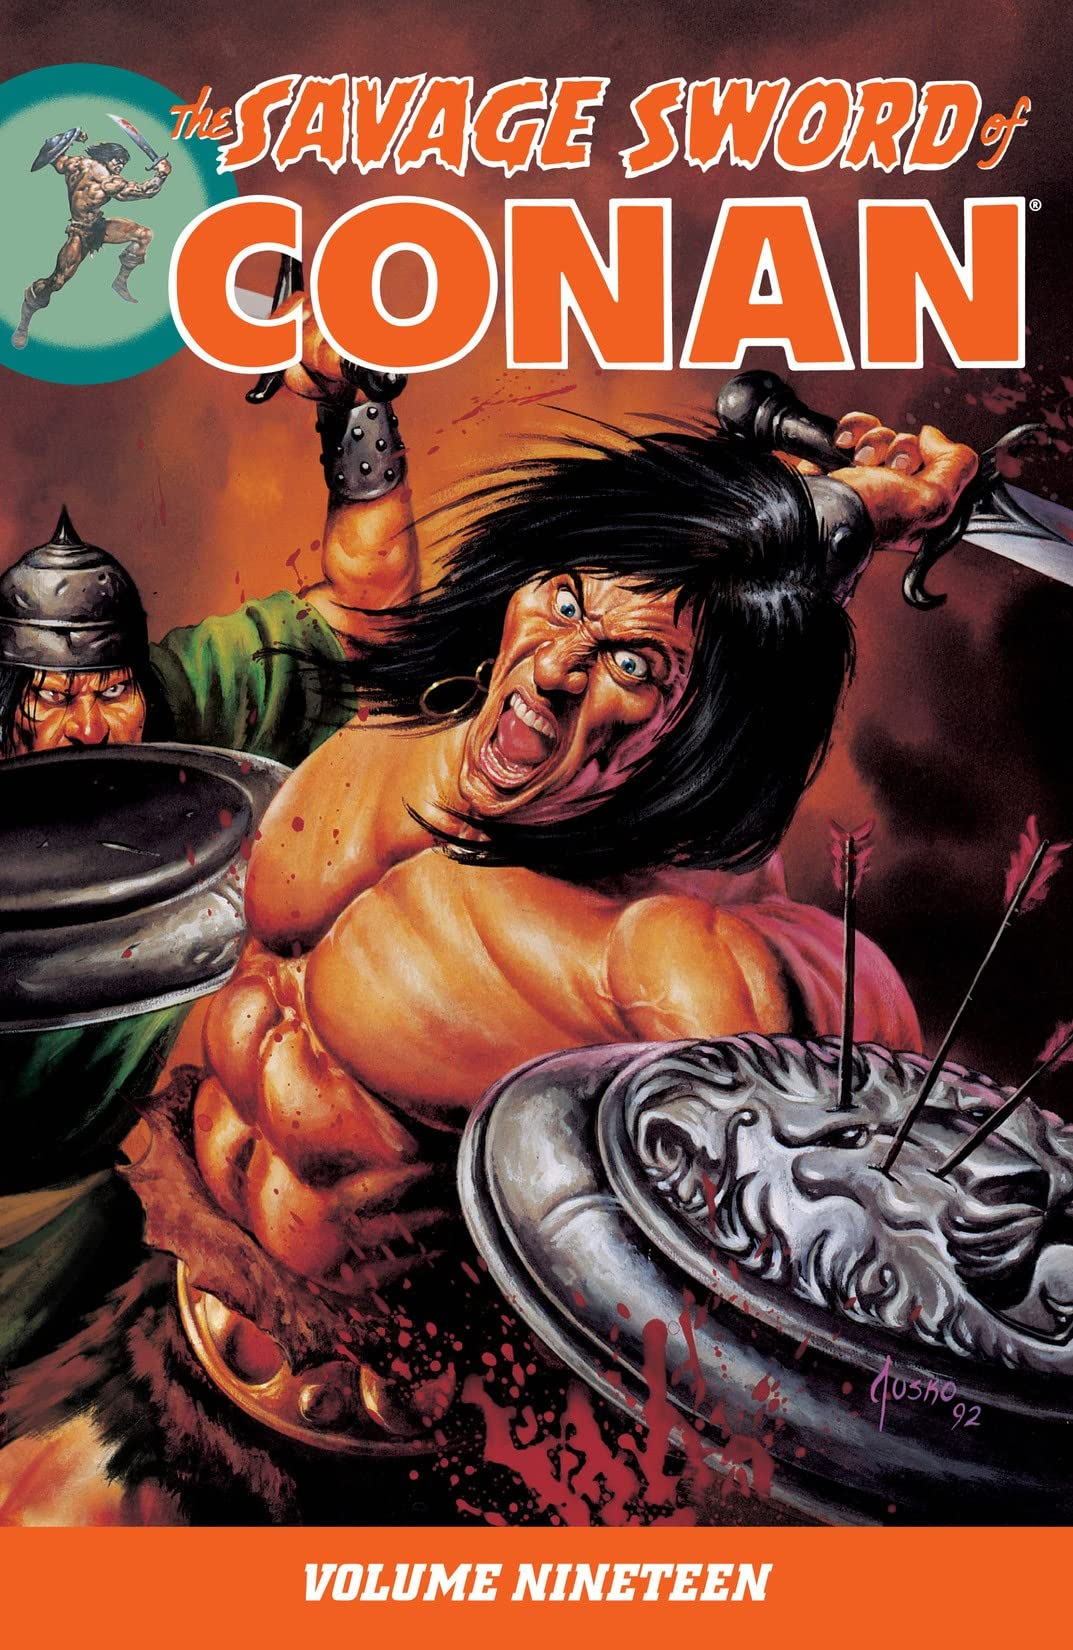 The Savage Sword of Conan Vol. 19